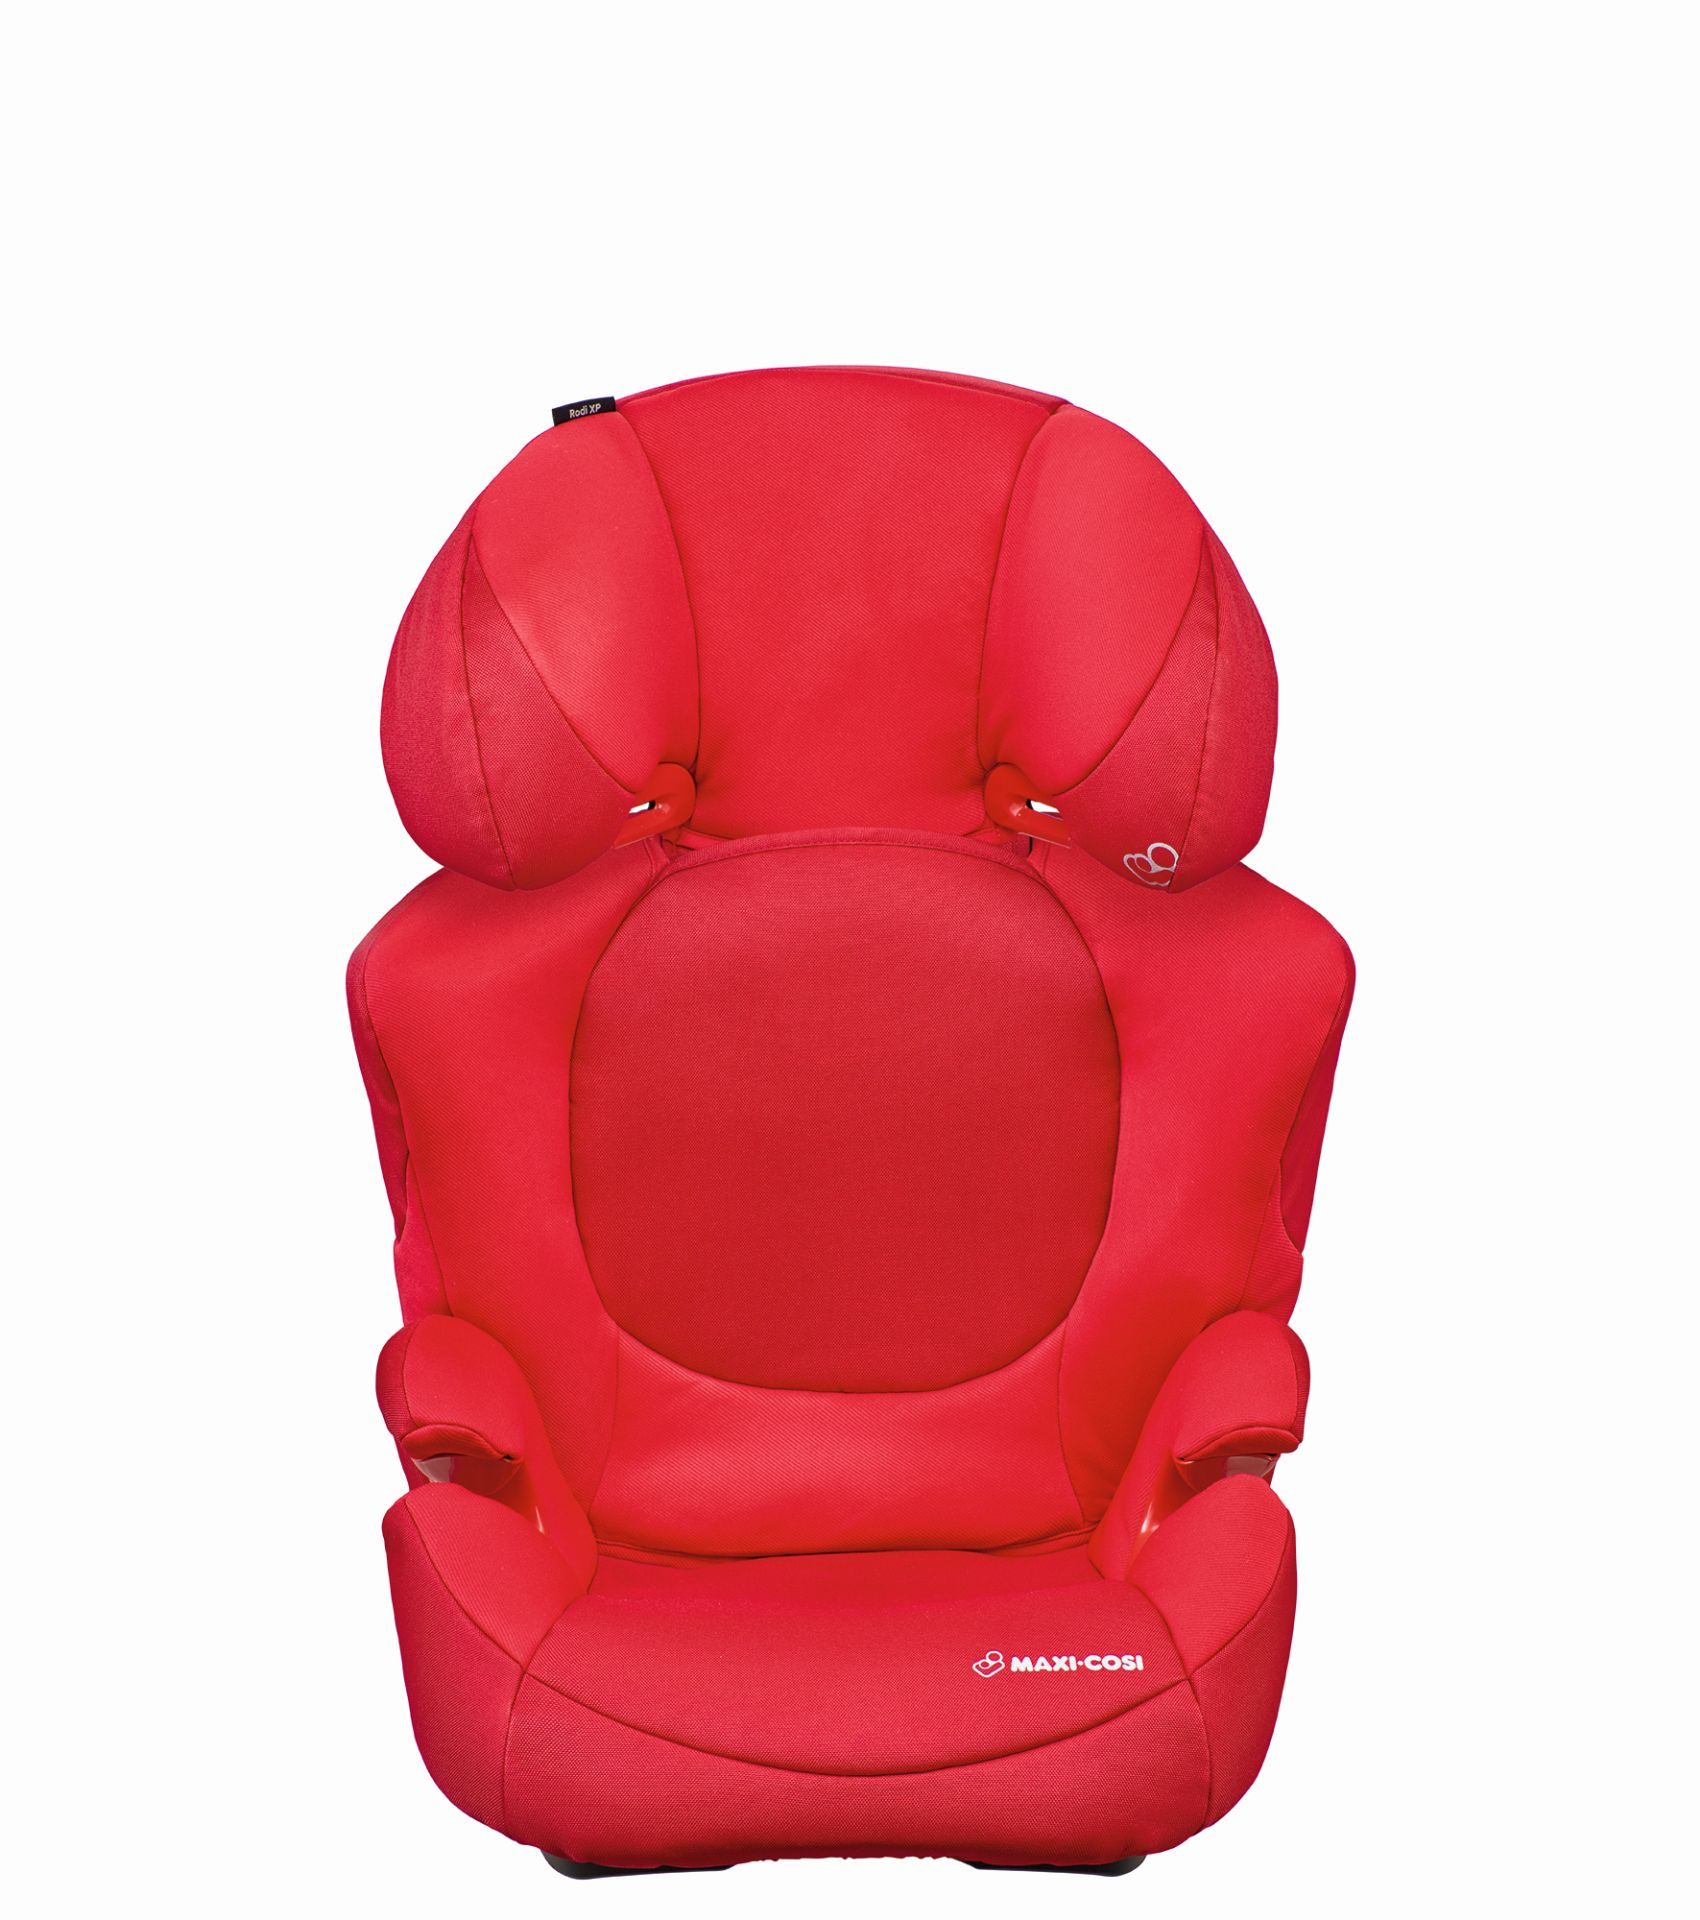 Maxi cosi child car seat rodi xp 2 buy at kidsroom car for Maxi cosi housse